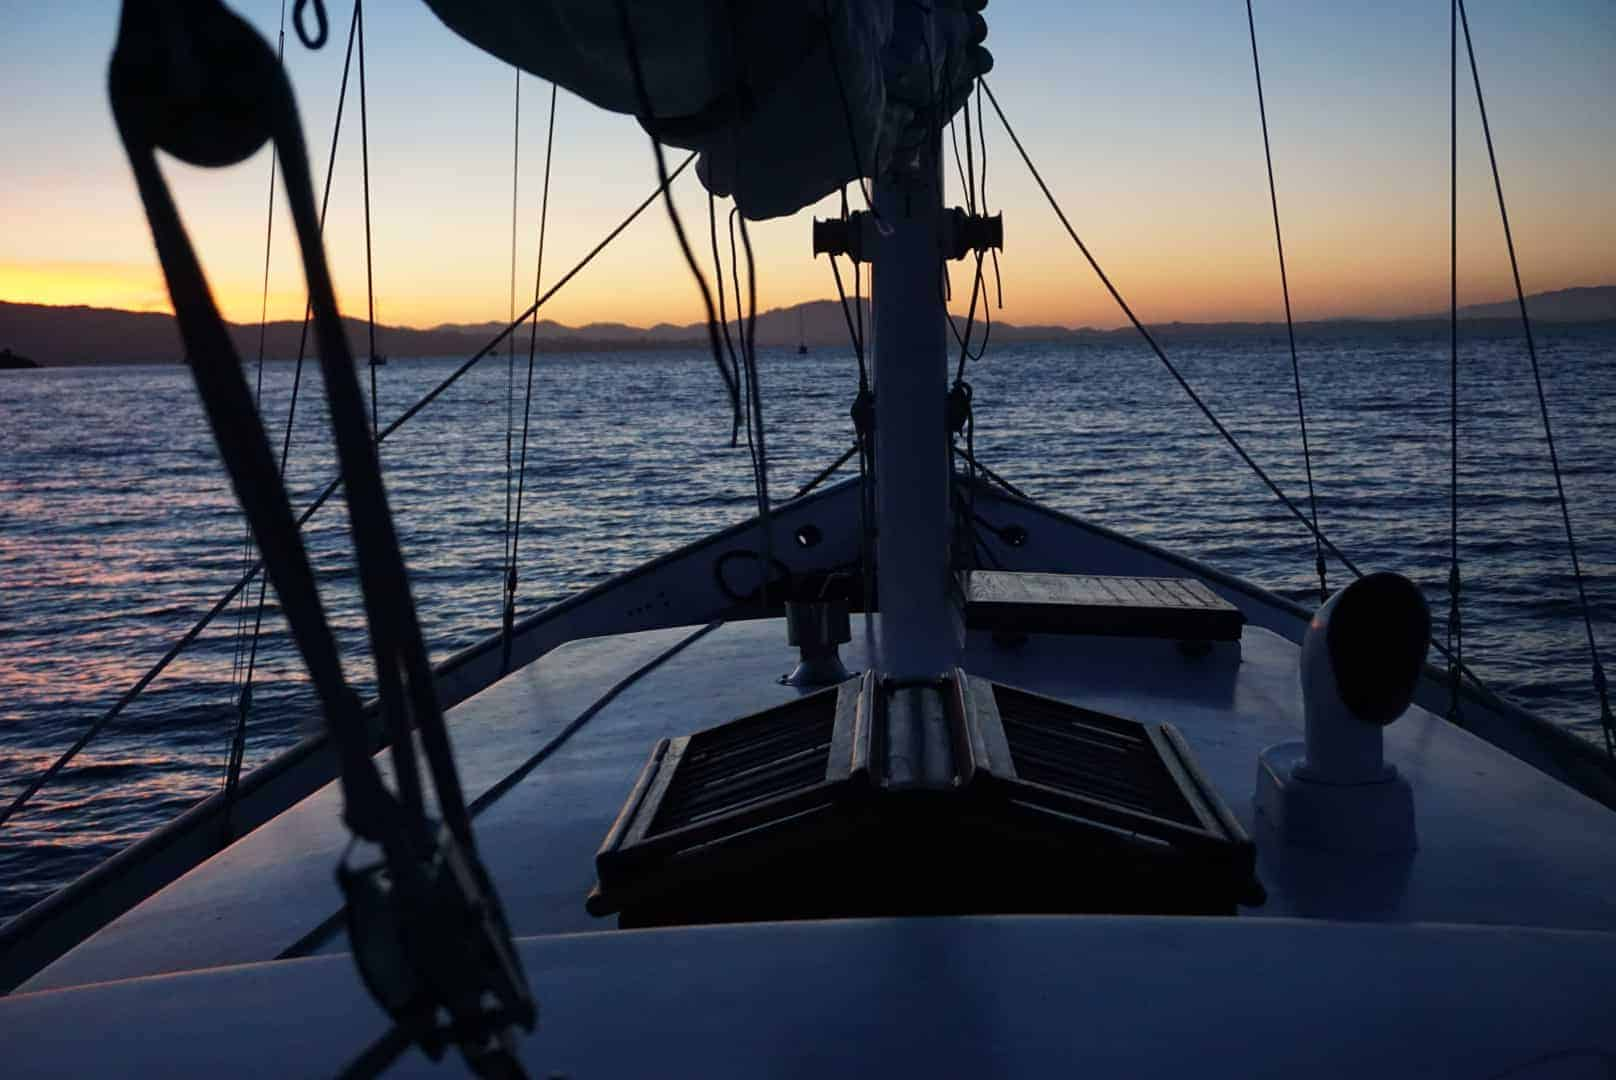 Top 5 reasons I love living on a sailboat full-time